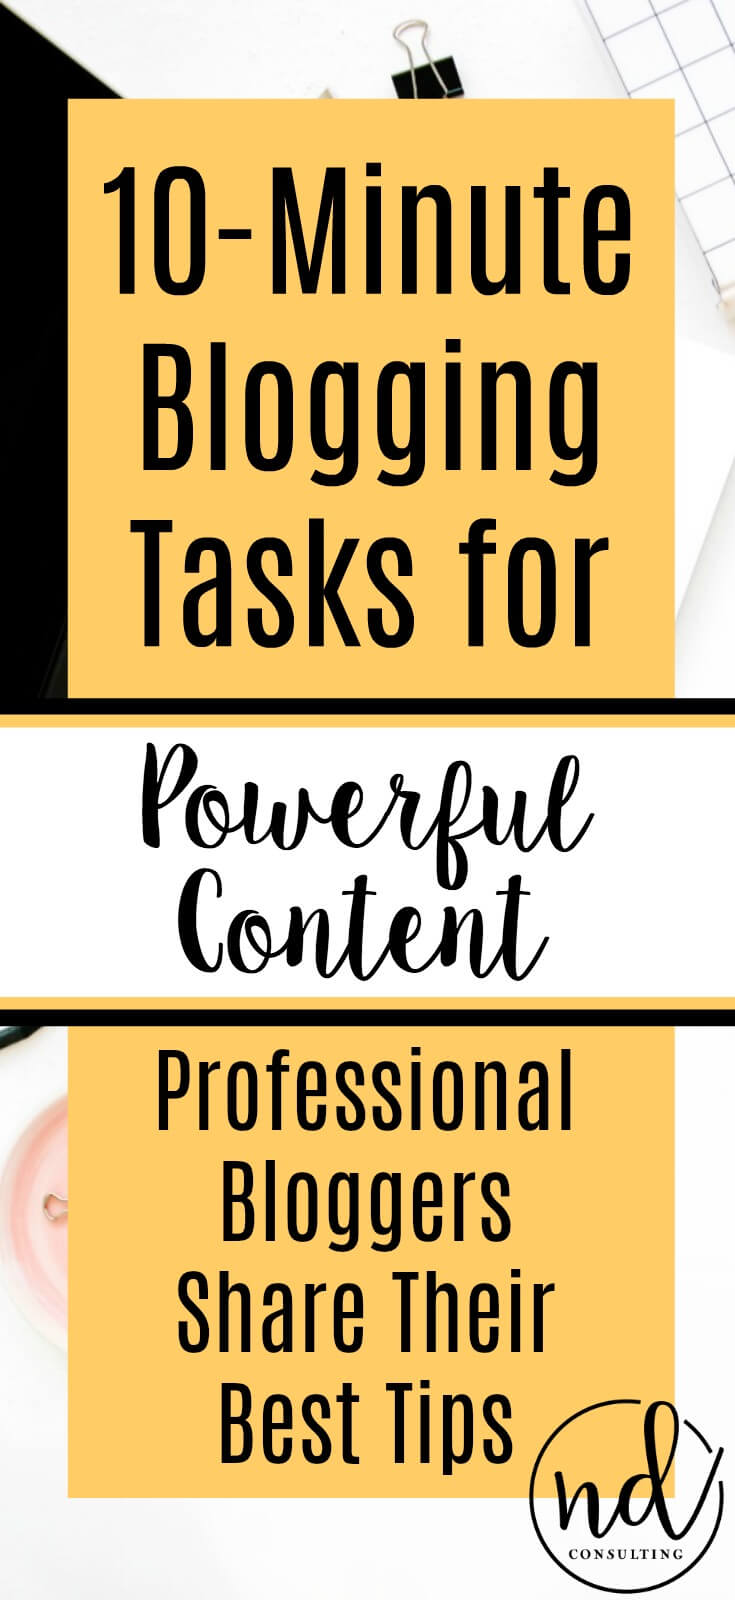 10 Minute Blogging Quick Tips for Powerful Content Creation